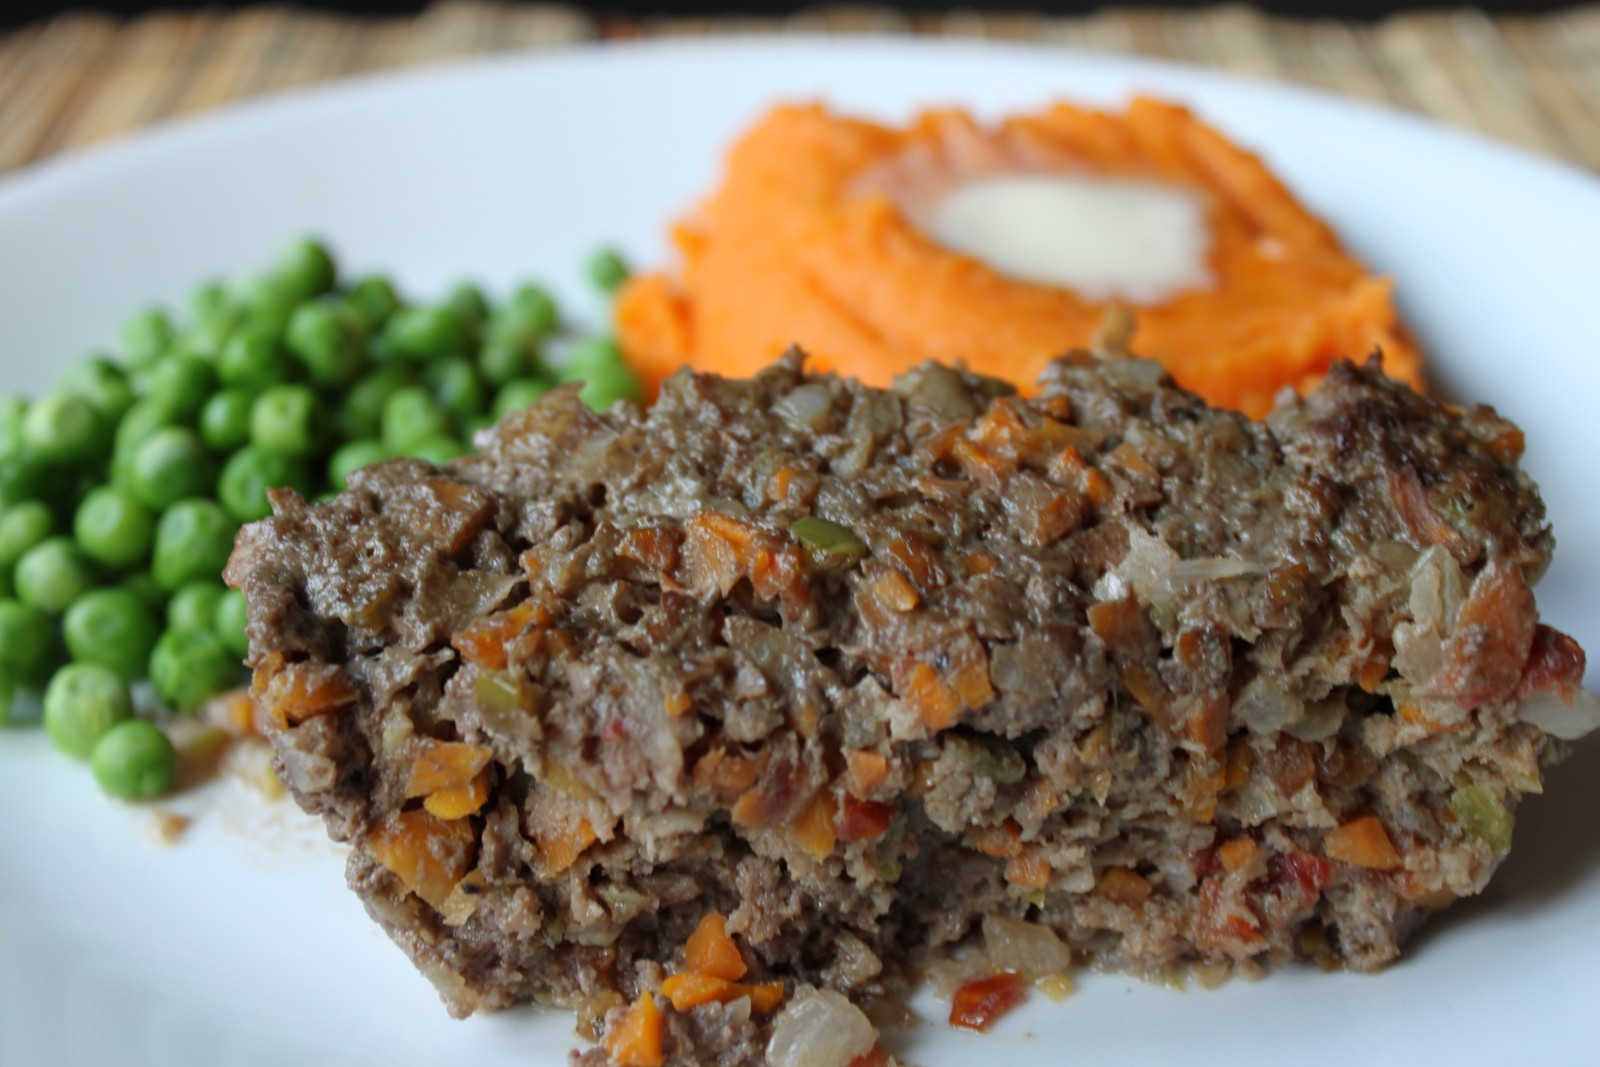 Meatloaf (with veggies)